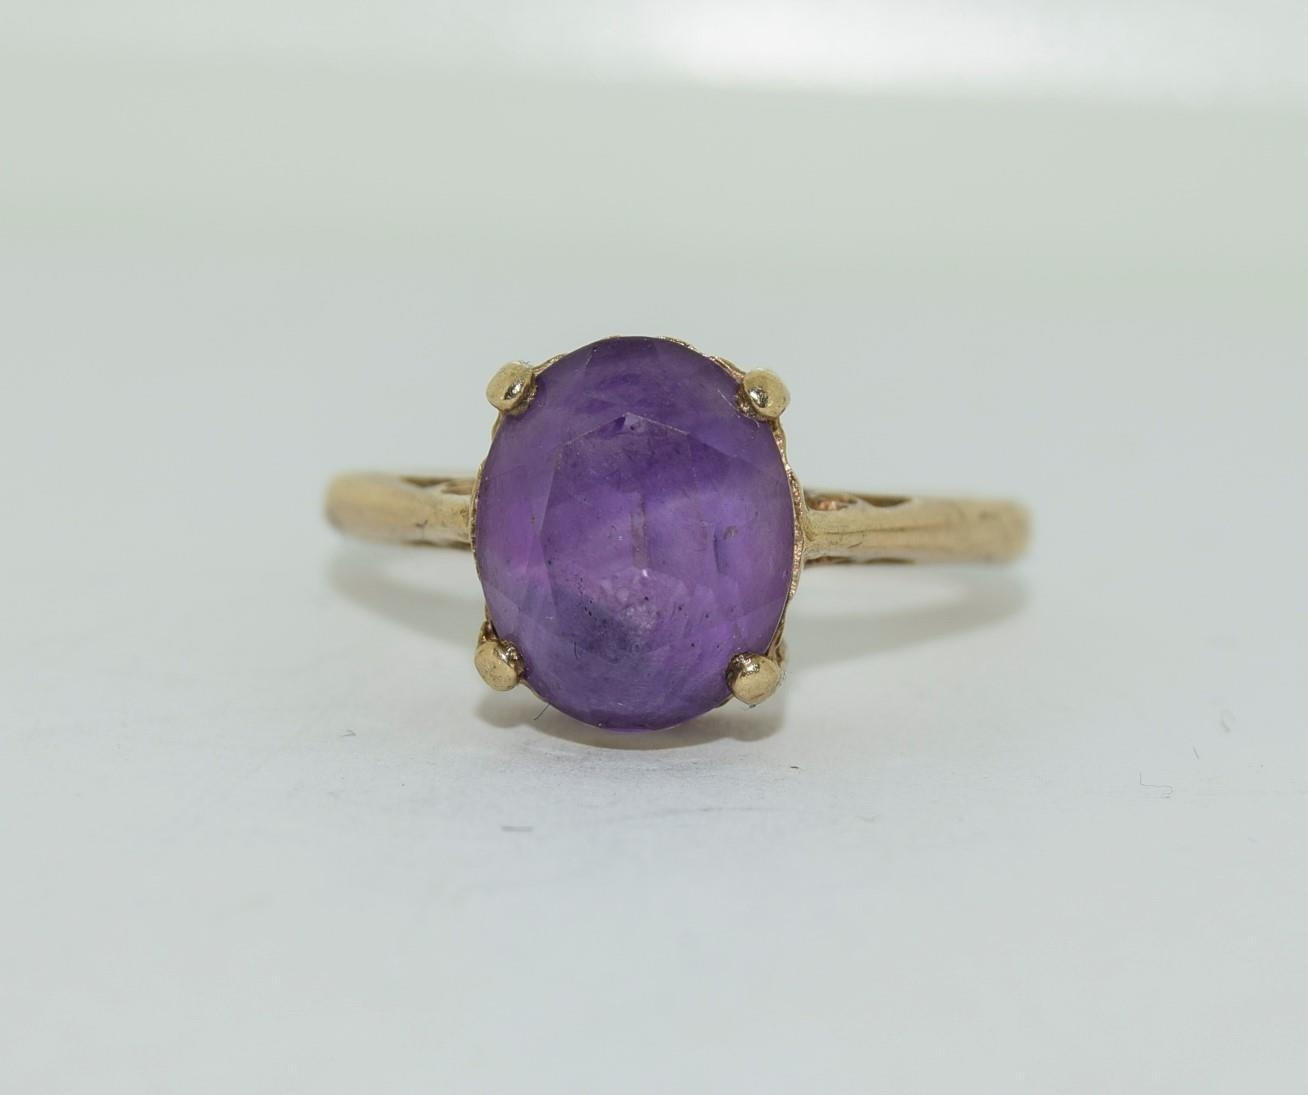 9ct gold ladies Amethyst ring size N - Image 12 of 12